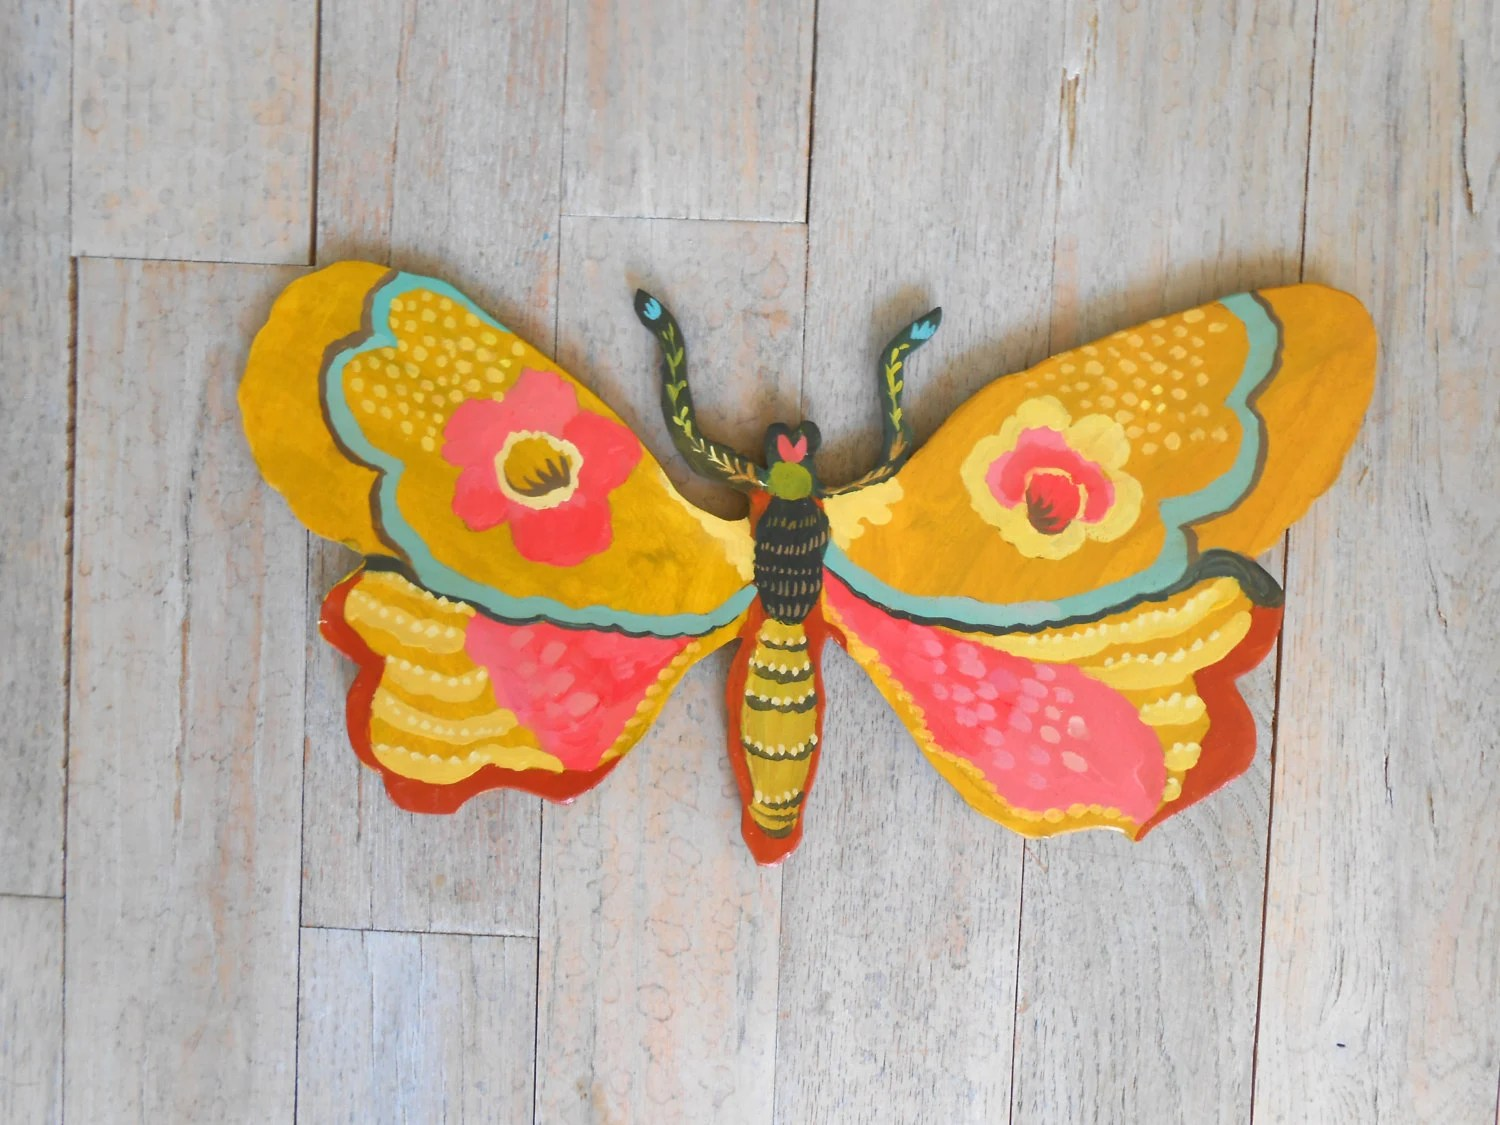 Joyful Moth Handpainted Wood Wall Sculpture By Kimberly Hodges Butterfly Wall Decor Painted Moth Tween Decor Girls Decor Nursery Decor